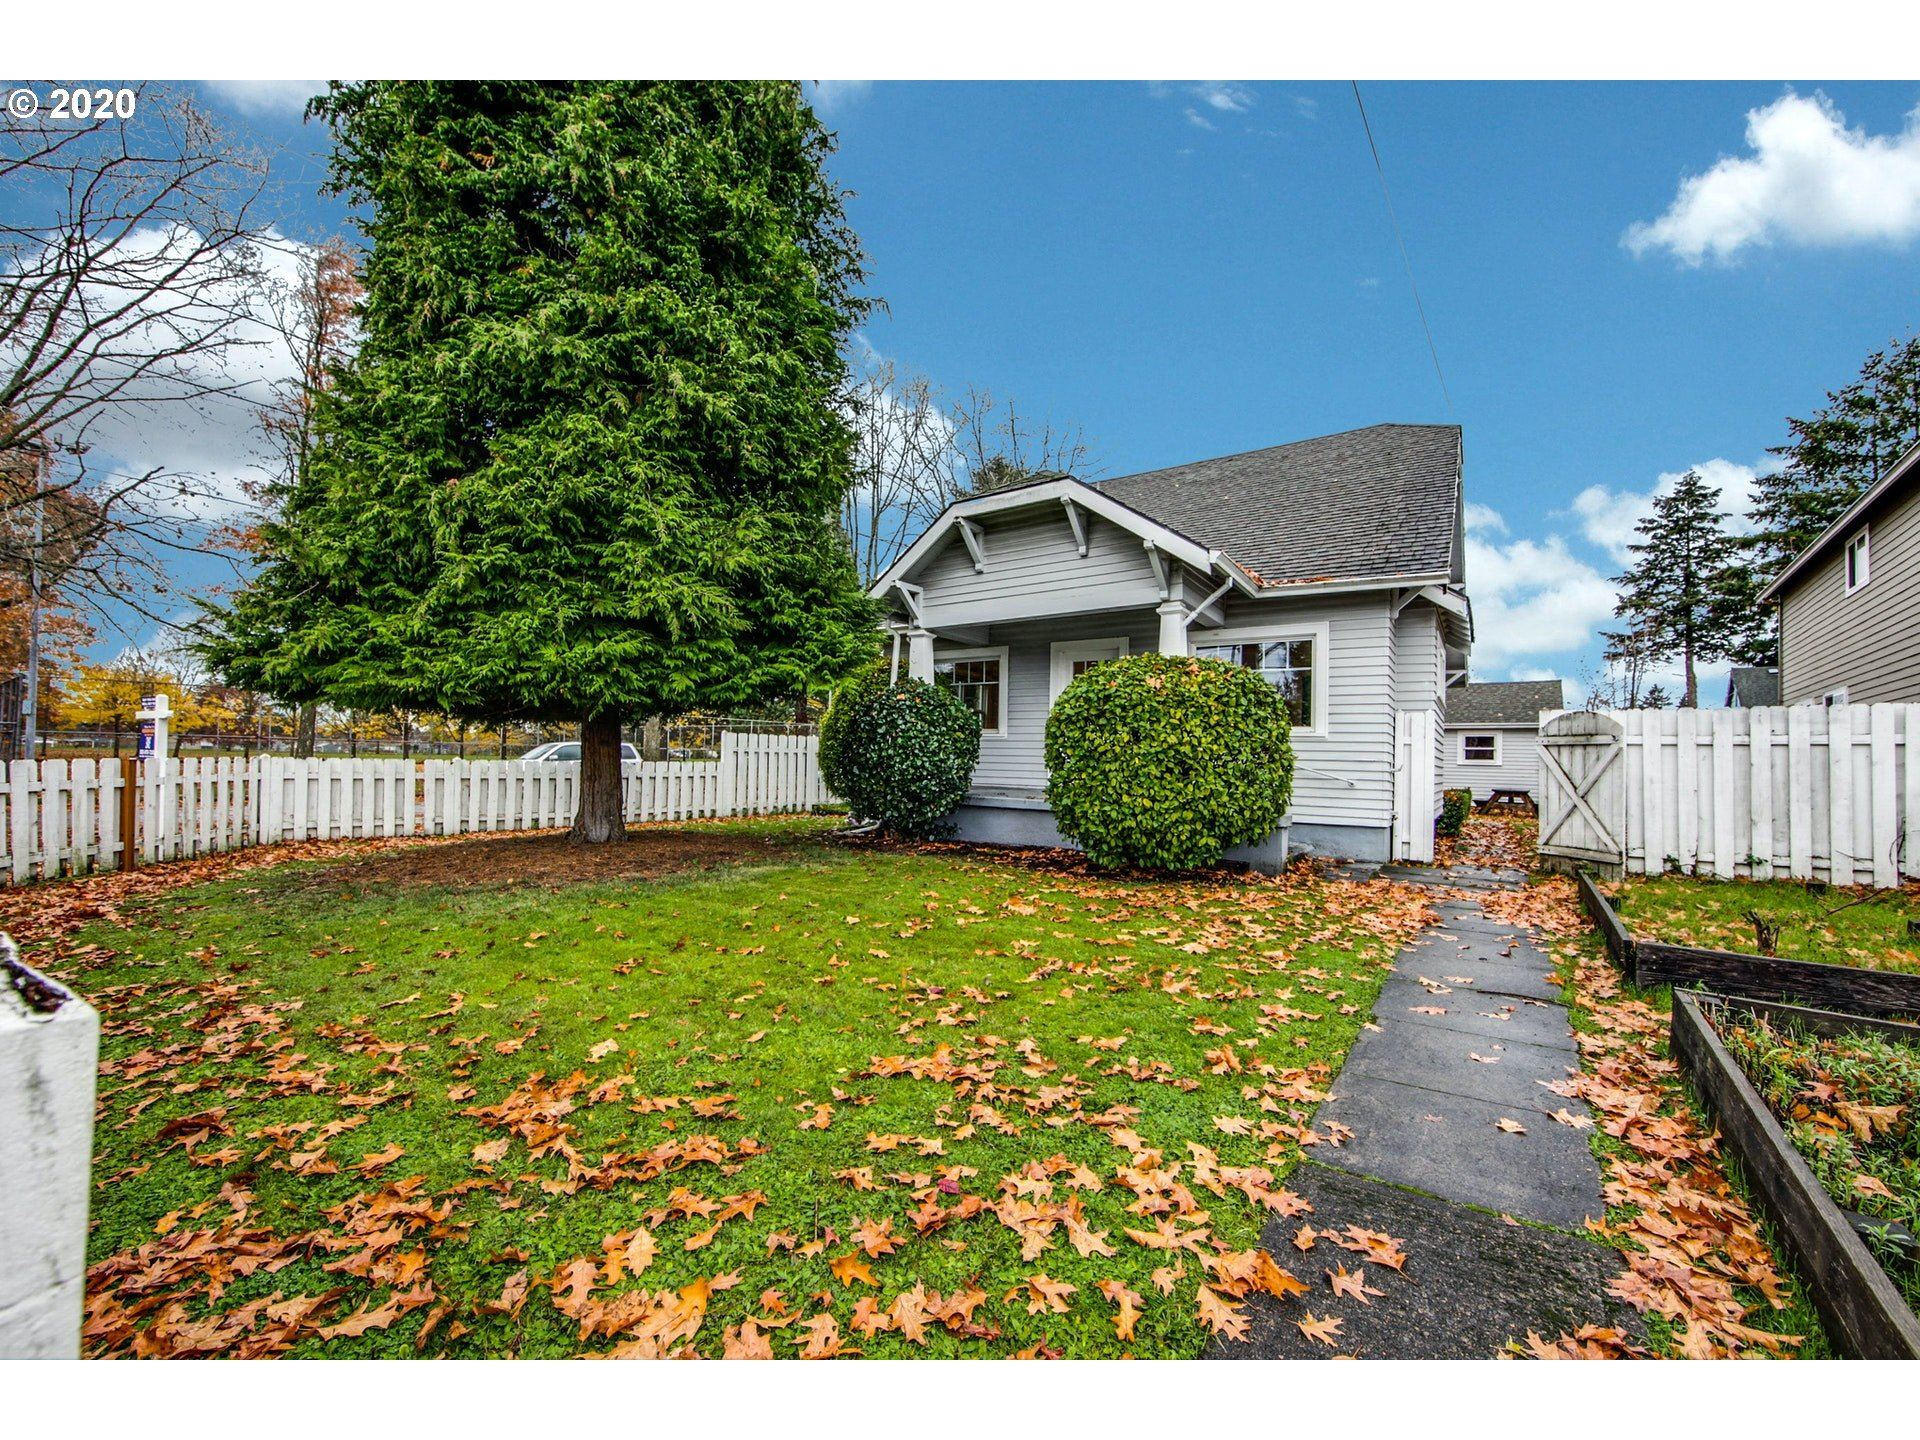 6541 SE 89TH AVE, Portland, OR 97266 - MLS#: 20436314